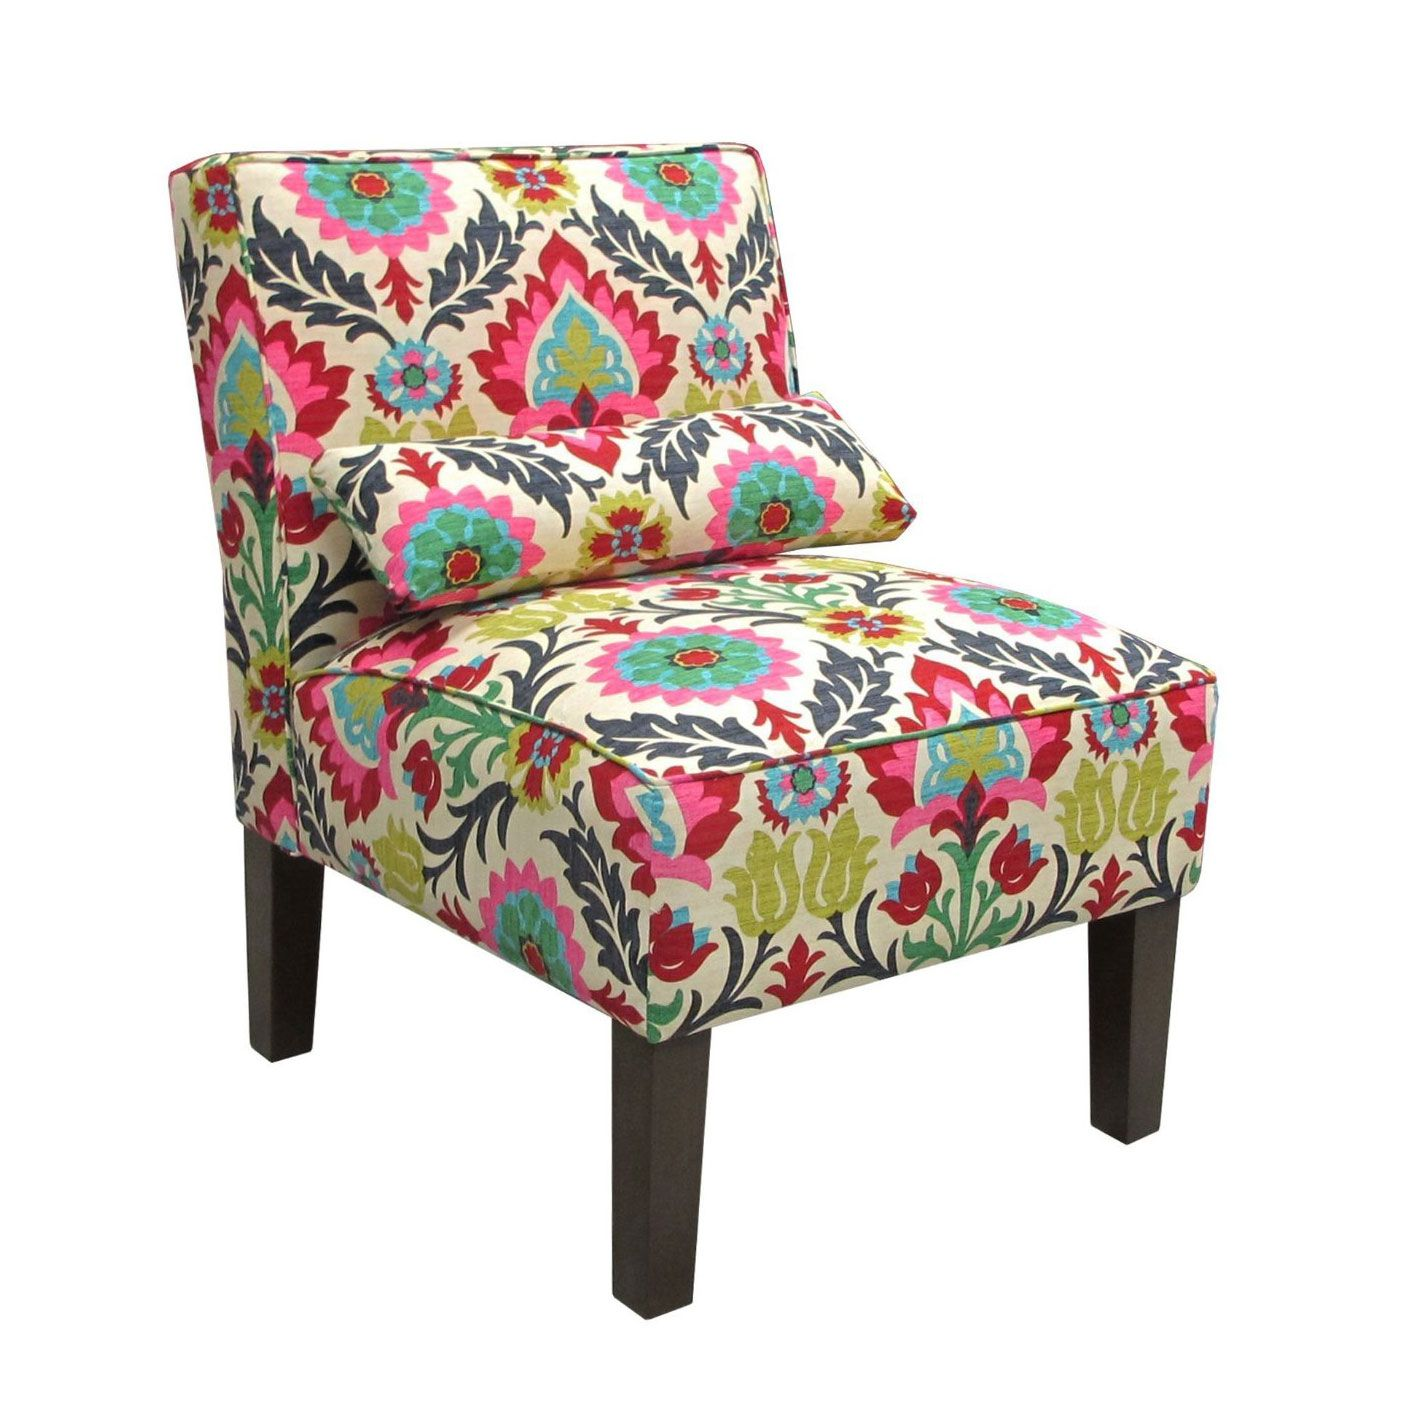 Okay maybe i could get that pink chaise i just posted if i added this chair it has the greens and blues i like yet the pink red gives it that unexpected